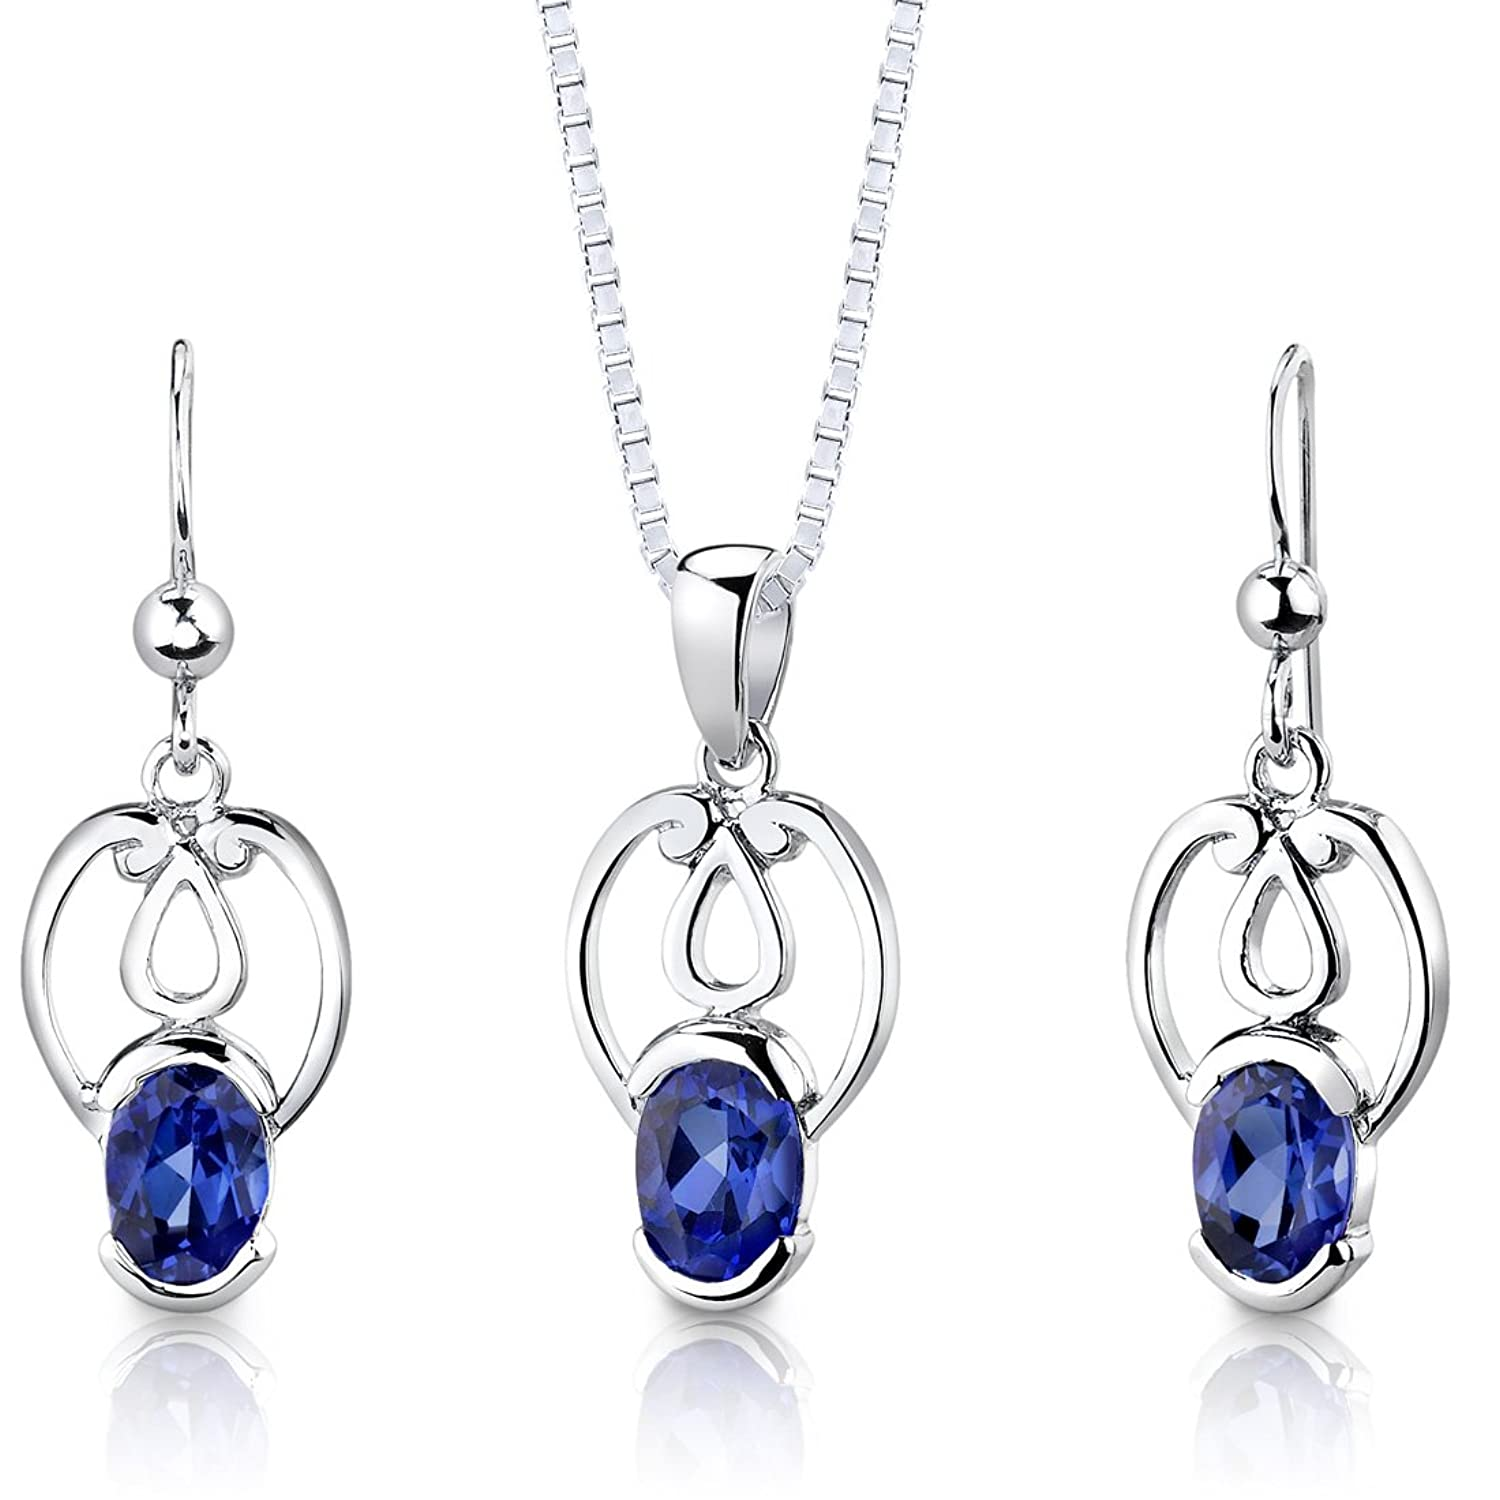 Created Sapphire Pendant Earrings Necklace Sterling Silver Rhodium Nickel Finish Oval Cut 2.25 Carats